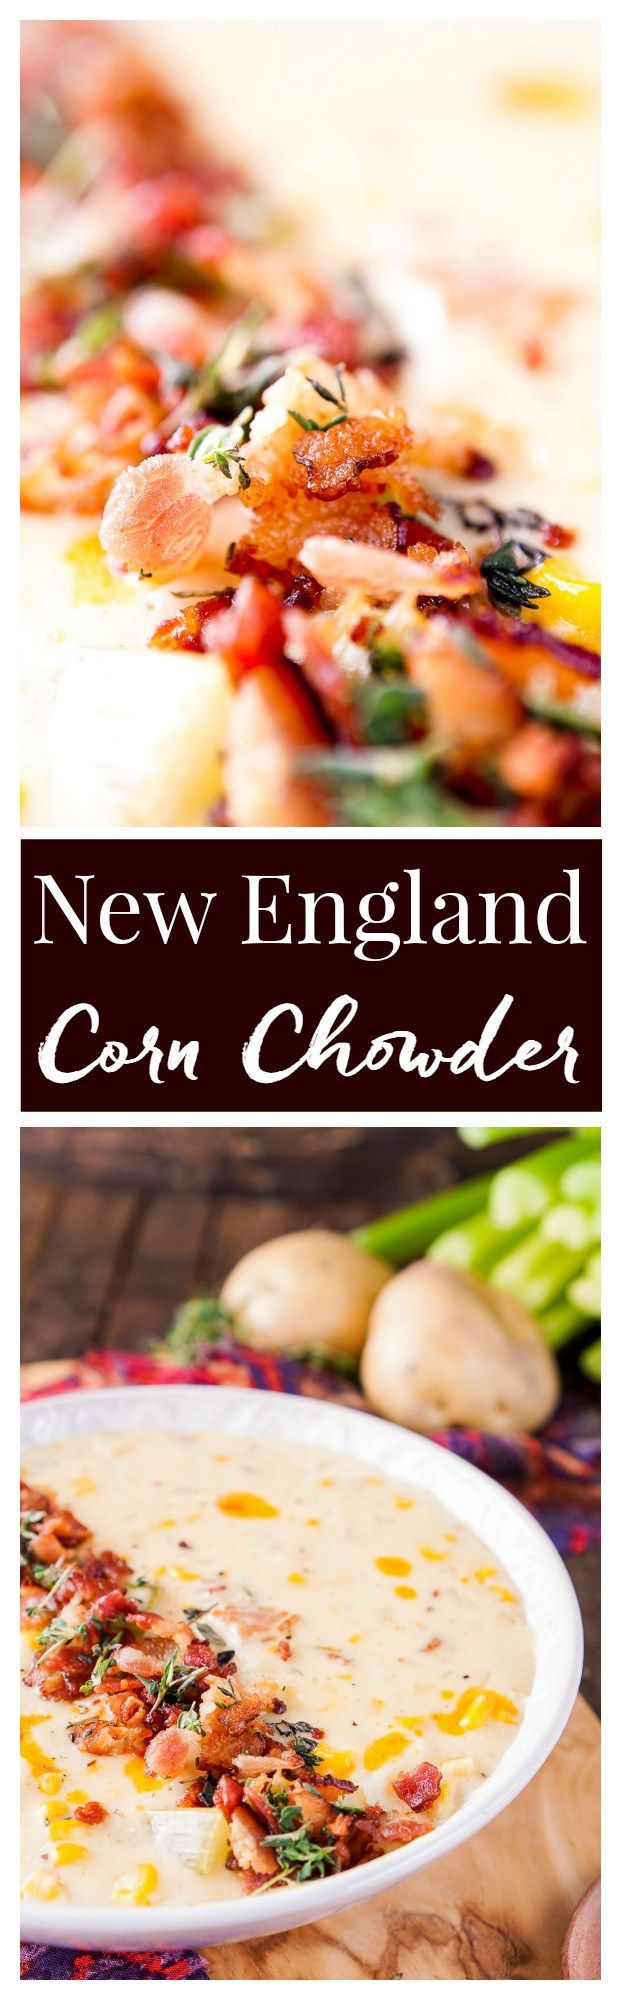 This New England Corn Chowder with Bacon is a slightly spicy adaptation from the down-home classic! Everything you'd expect from the tradition dish with a helping of bacon and a kick of Tabasco!